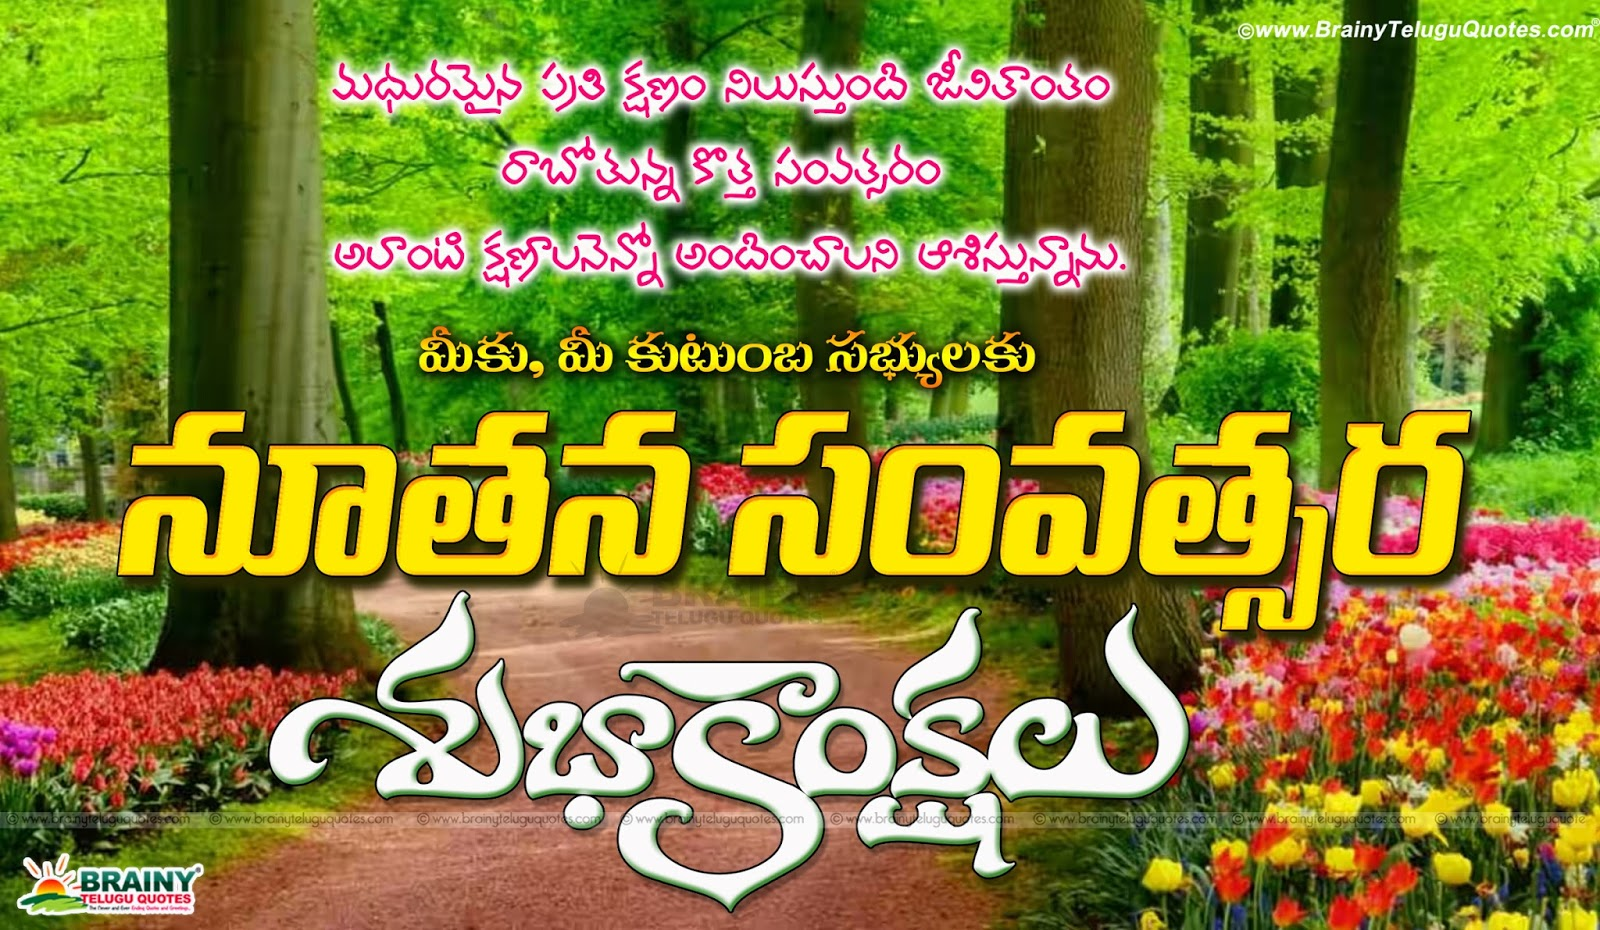 Latest best telugu happy new year inspirational greetings happy new year 2017 telugu greetings with hd wallpapers welcome 2017 greetings in telugu new year inspirational quotes greetings online best new year kristyandbryce Image collections